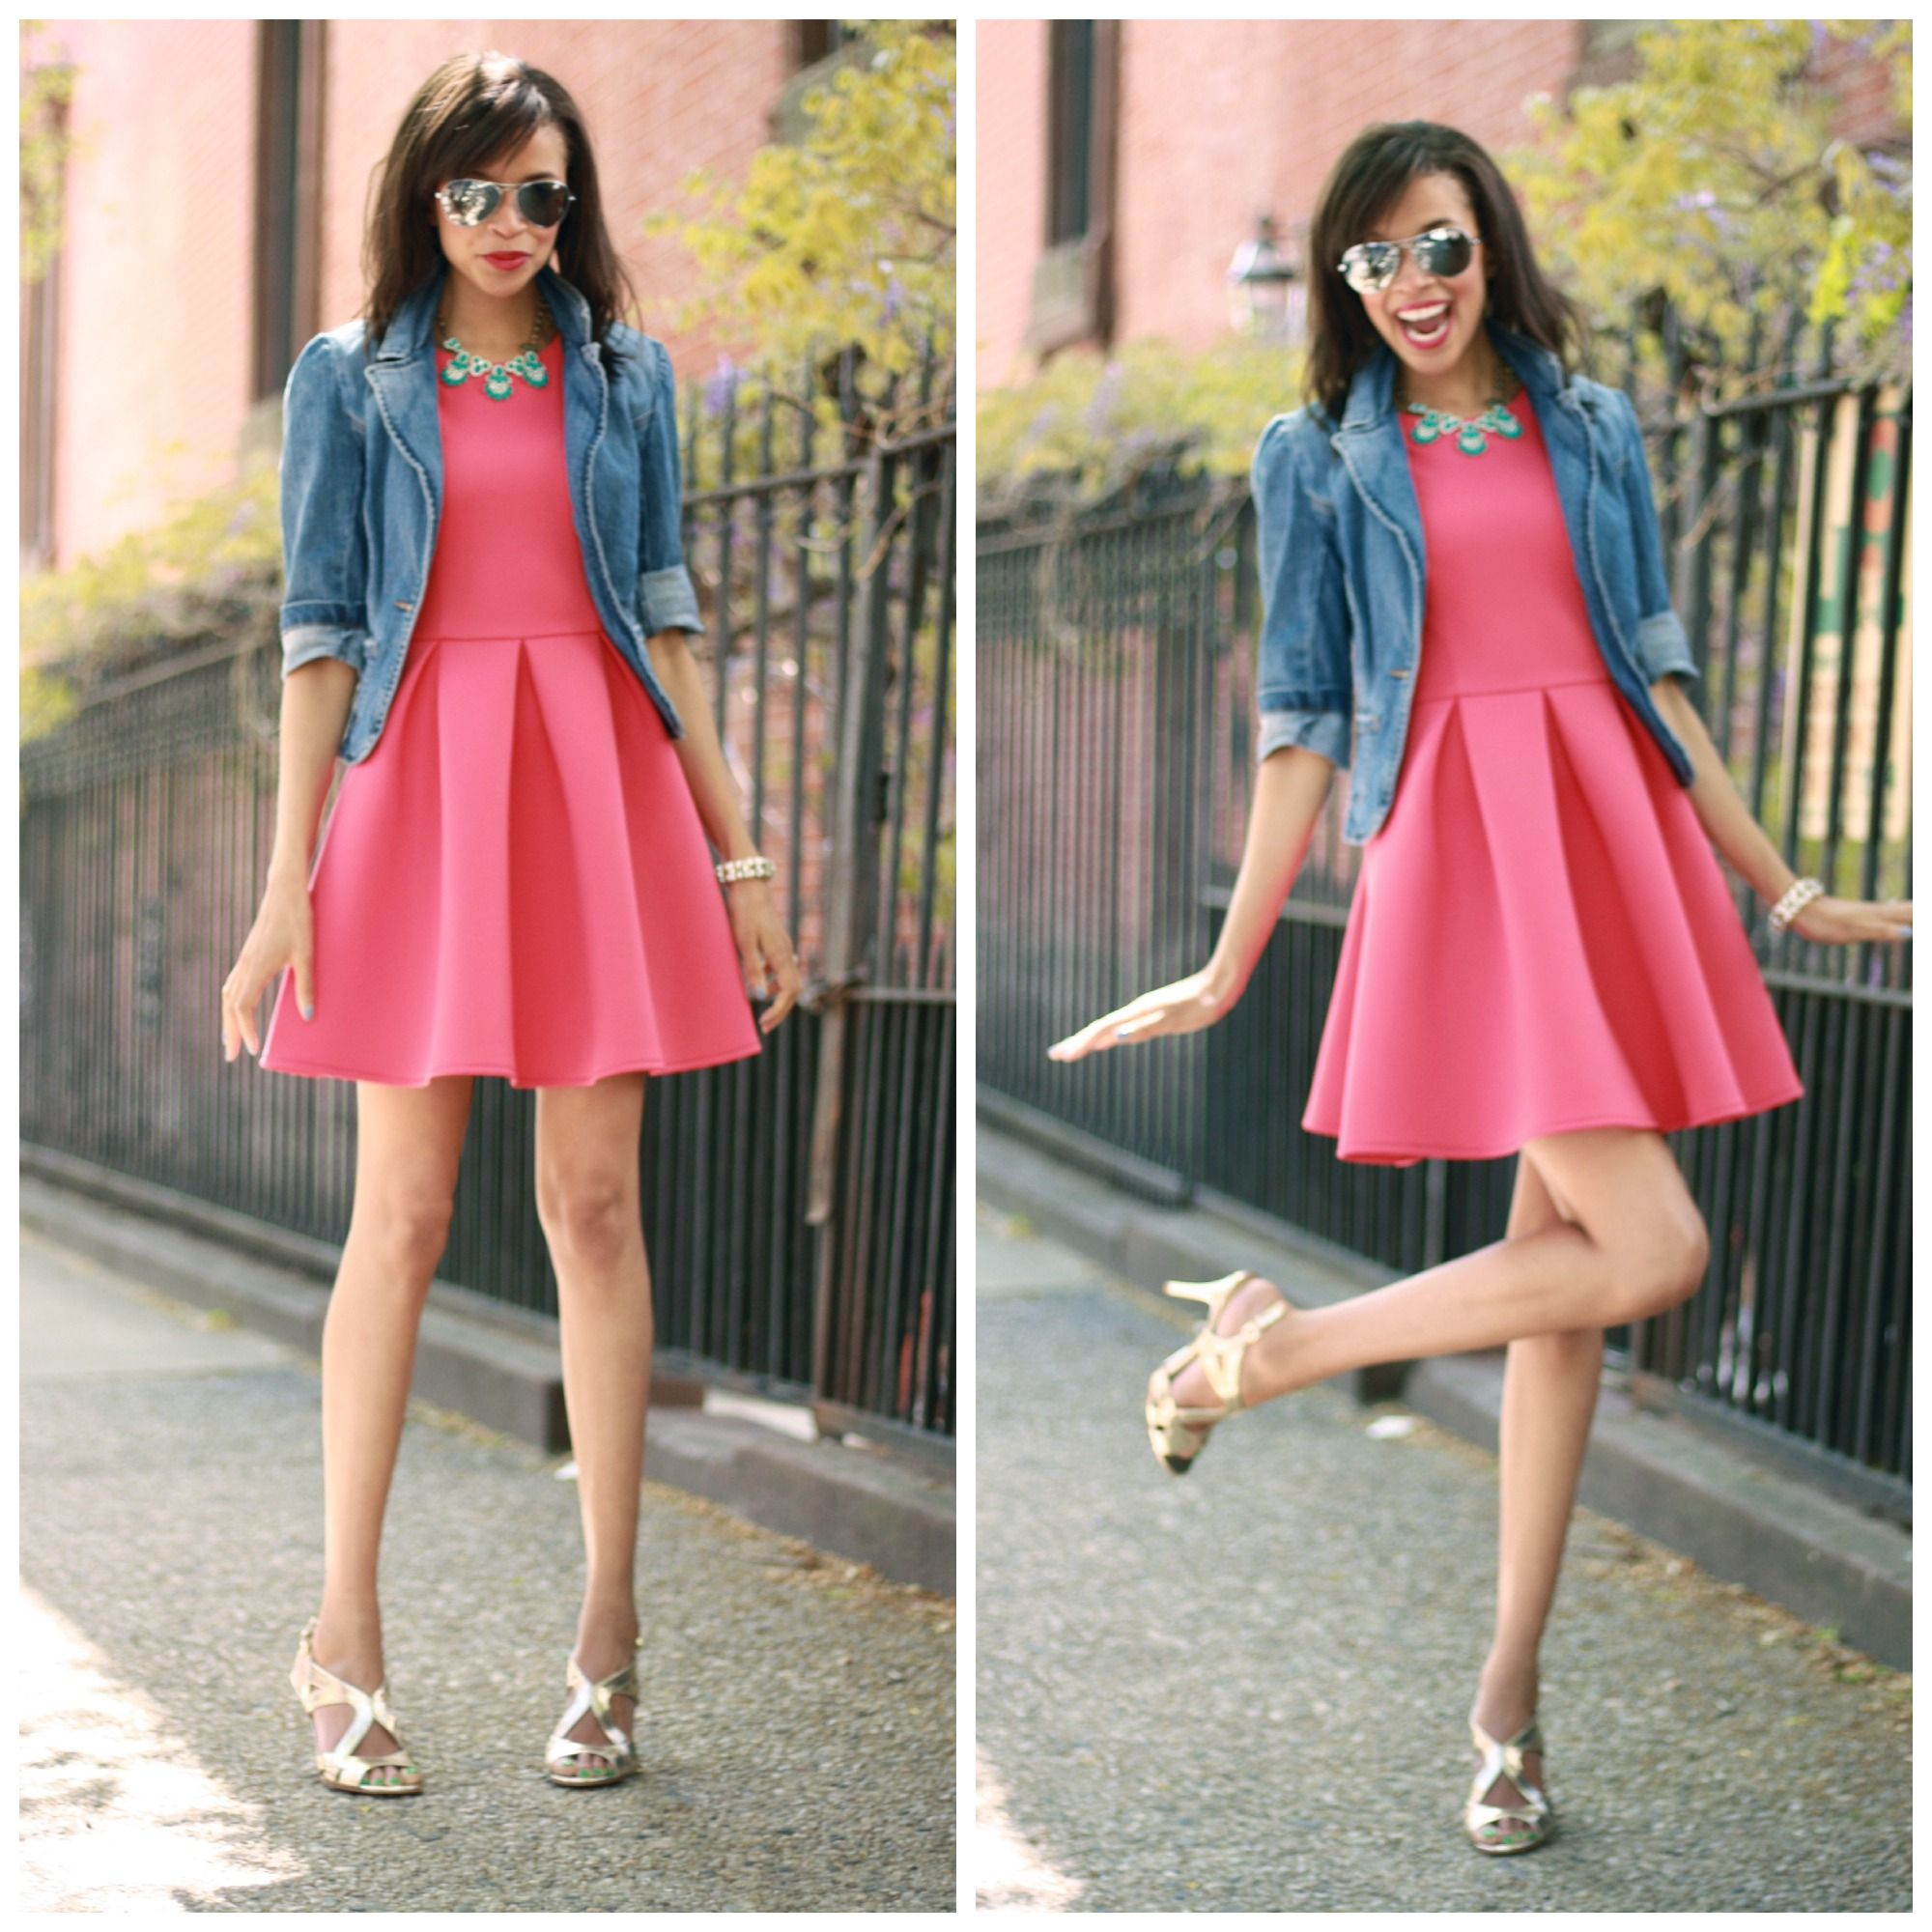 pink-dress-gold-heels-jean-jacket1.jpg (2000×2000) | Denim Jacket ...